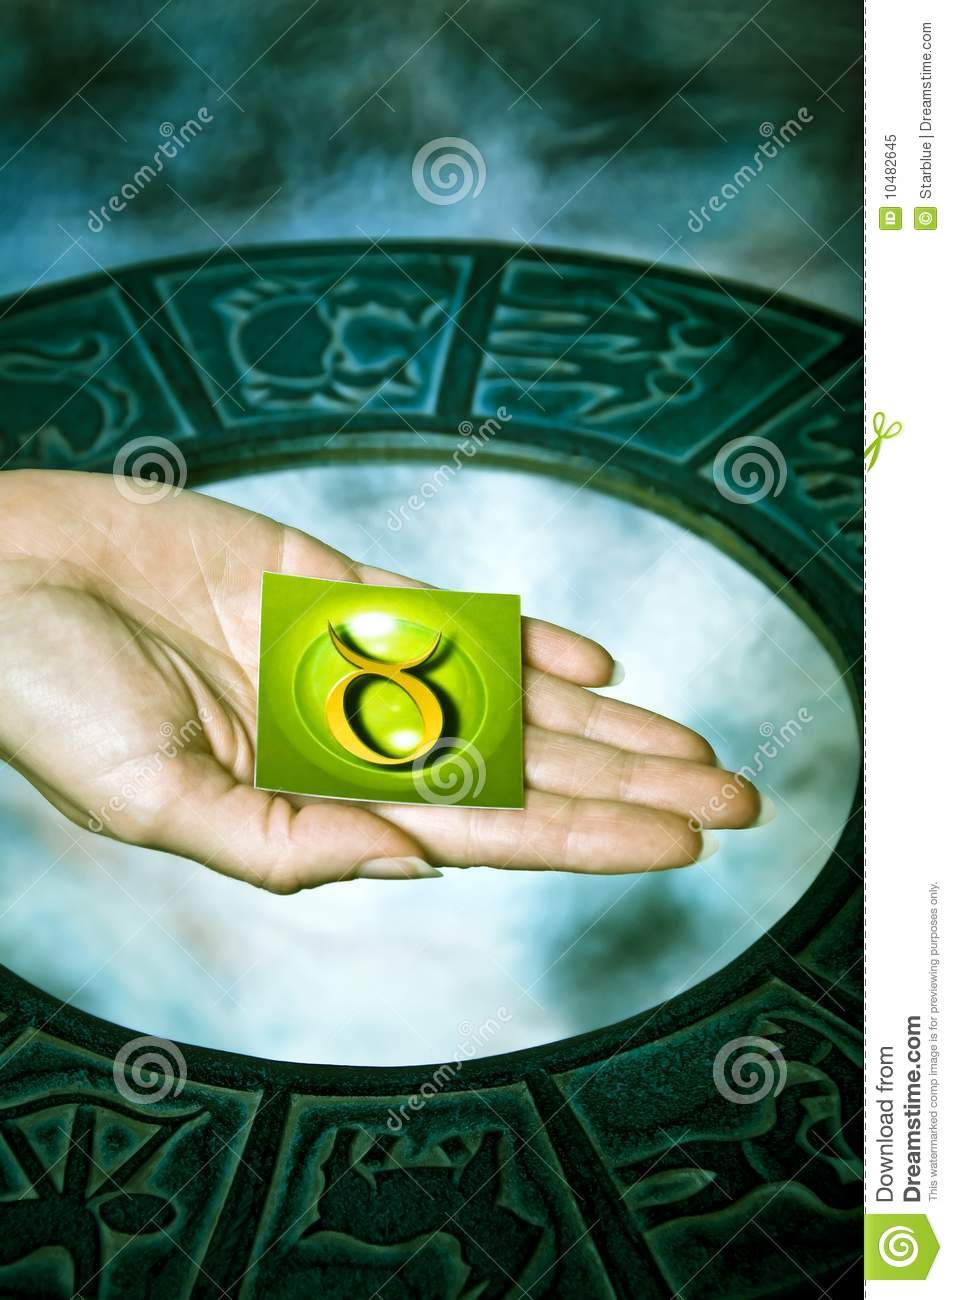 Download Astrological sign Taurus stock image. Image of green - 10482645